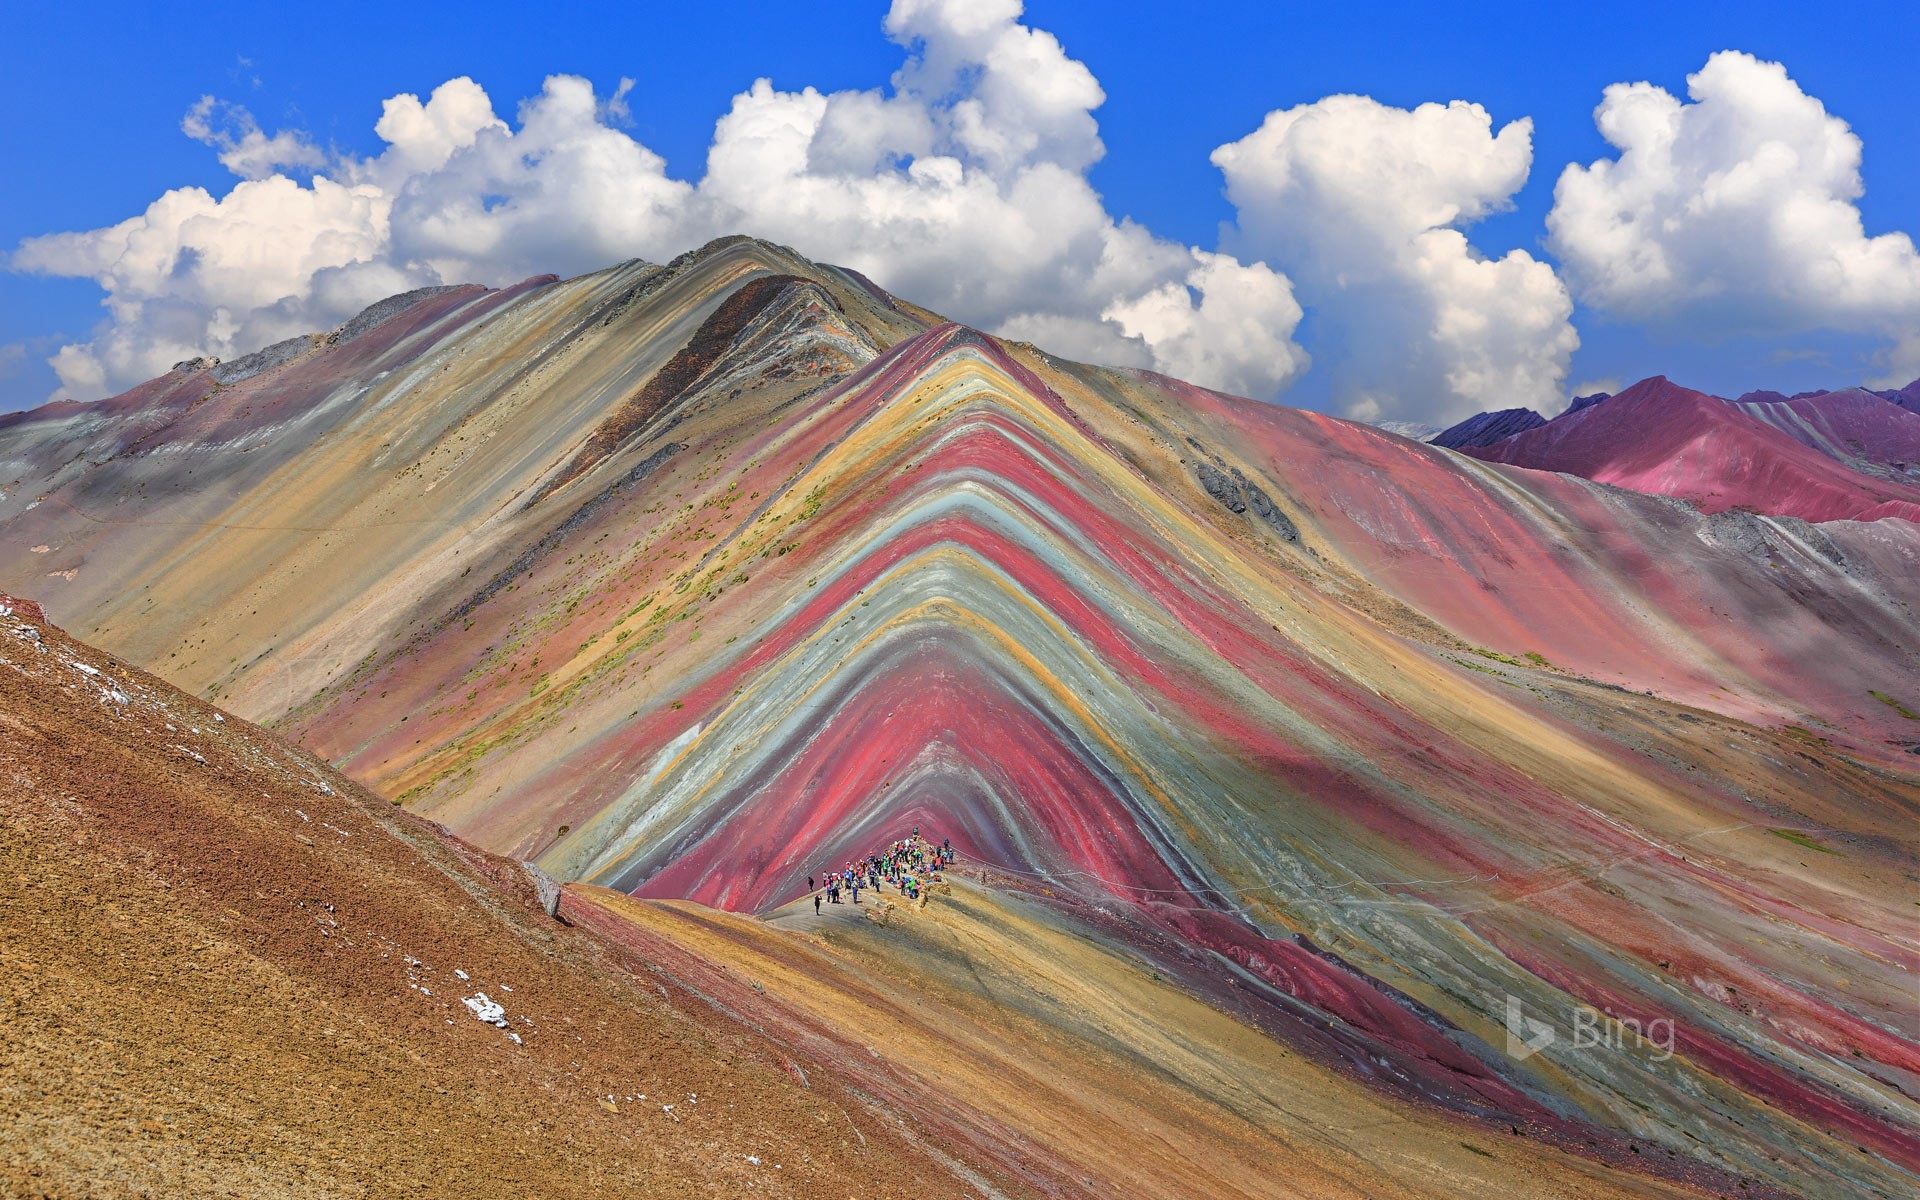 Vinicunca Mountain in the Cusco Region of Peru (© sorincolac/Getty Images)